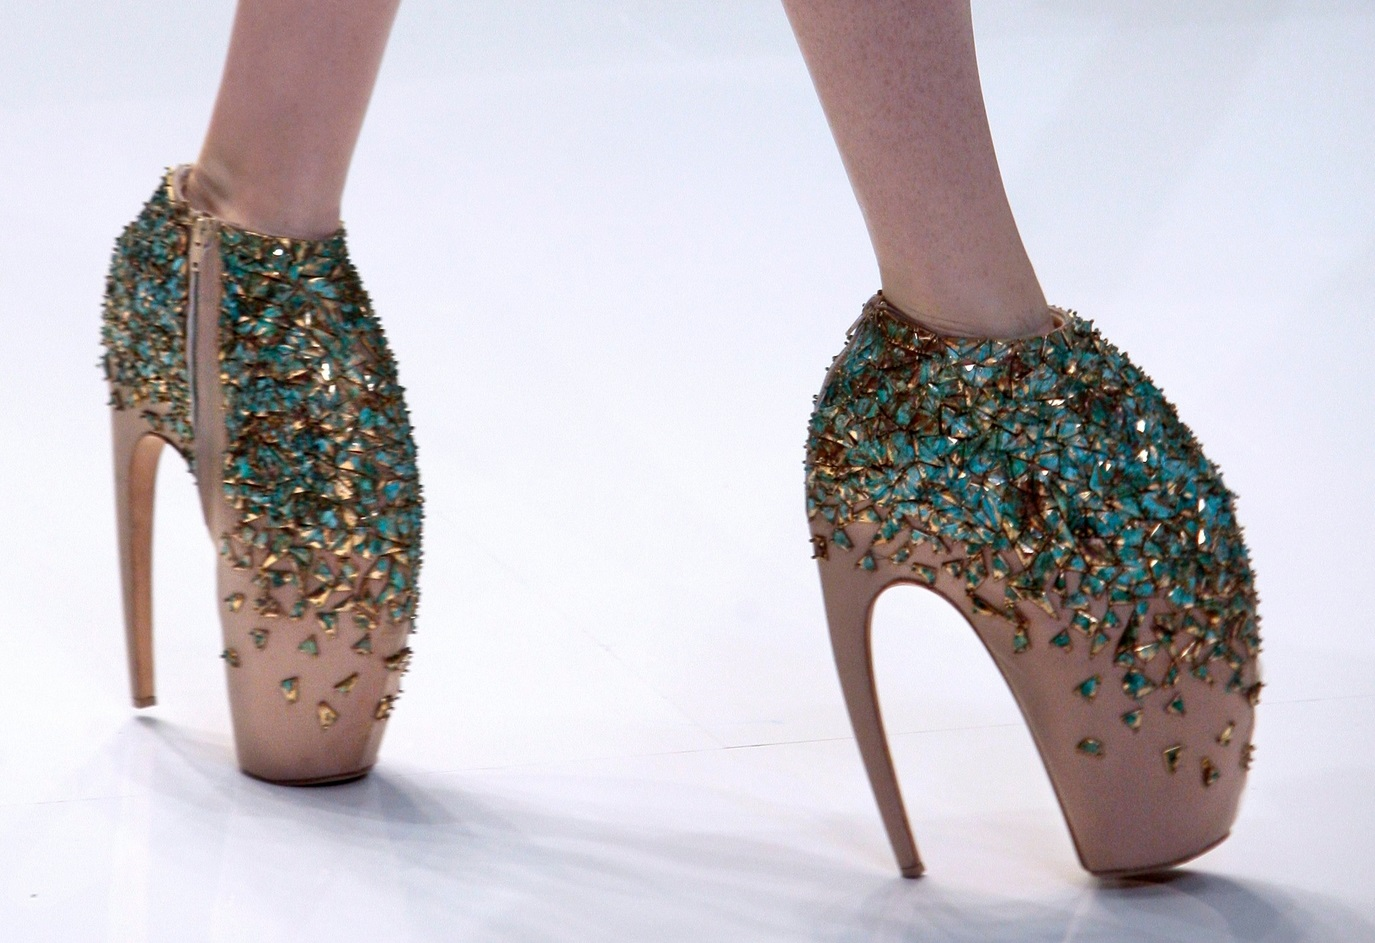 7. These Alexander McQueen's look very painful to walk in, but look amazing on. Some models in his shoes even refused to walk in them because they looked too terrifying. So goes it in fashion – pain is beauty, guys.